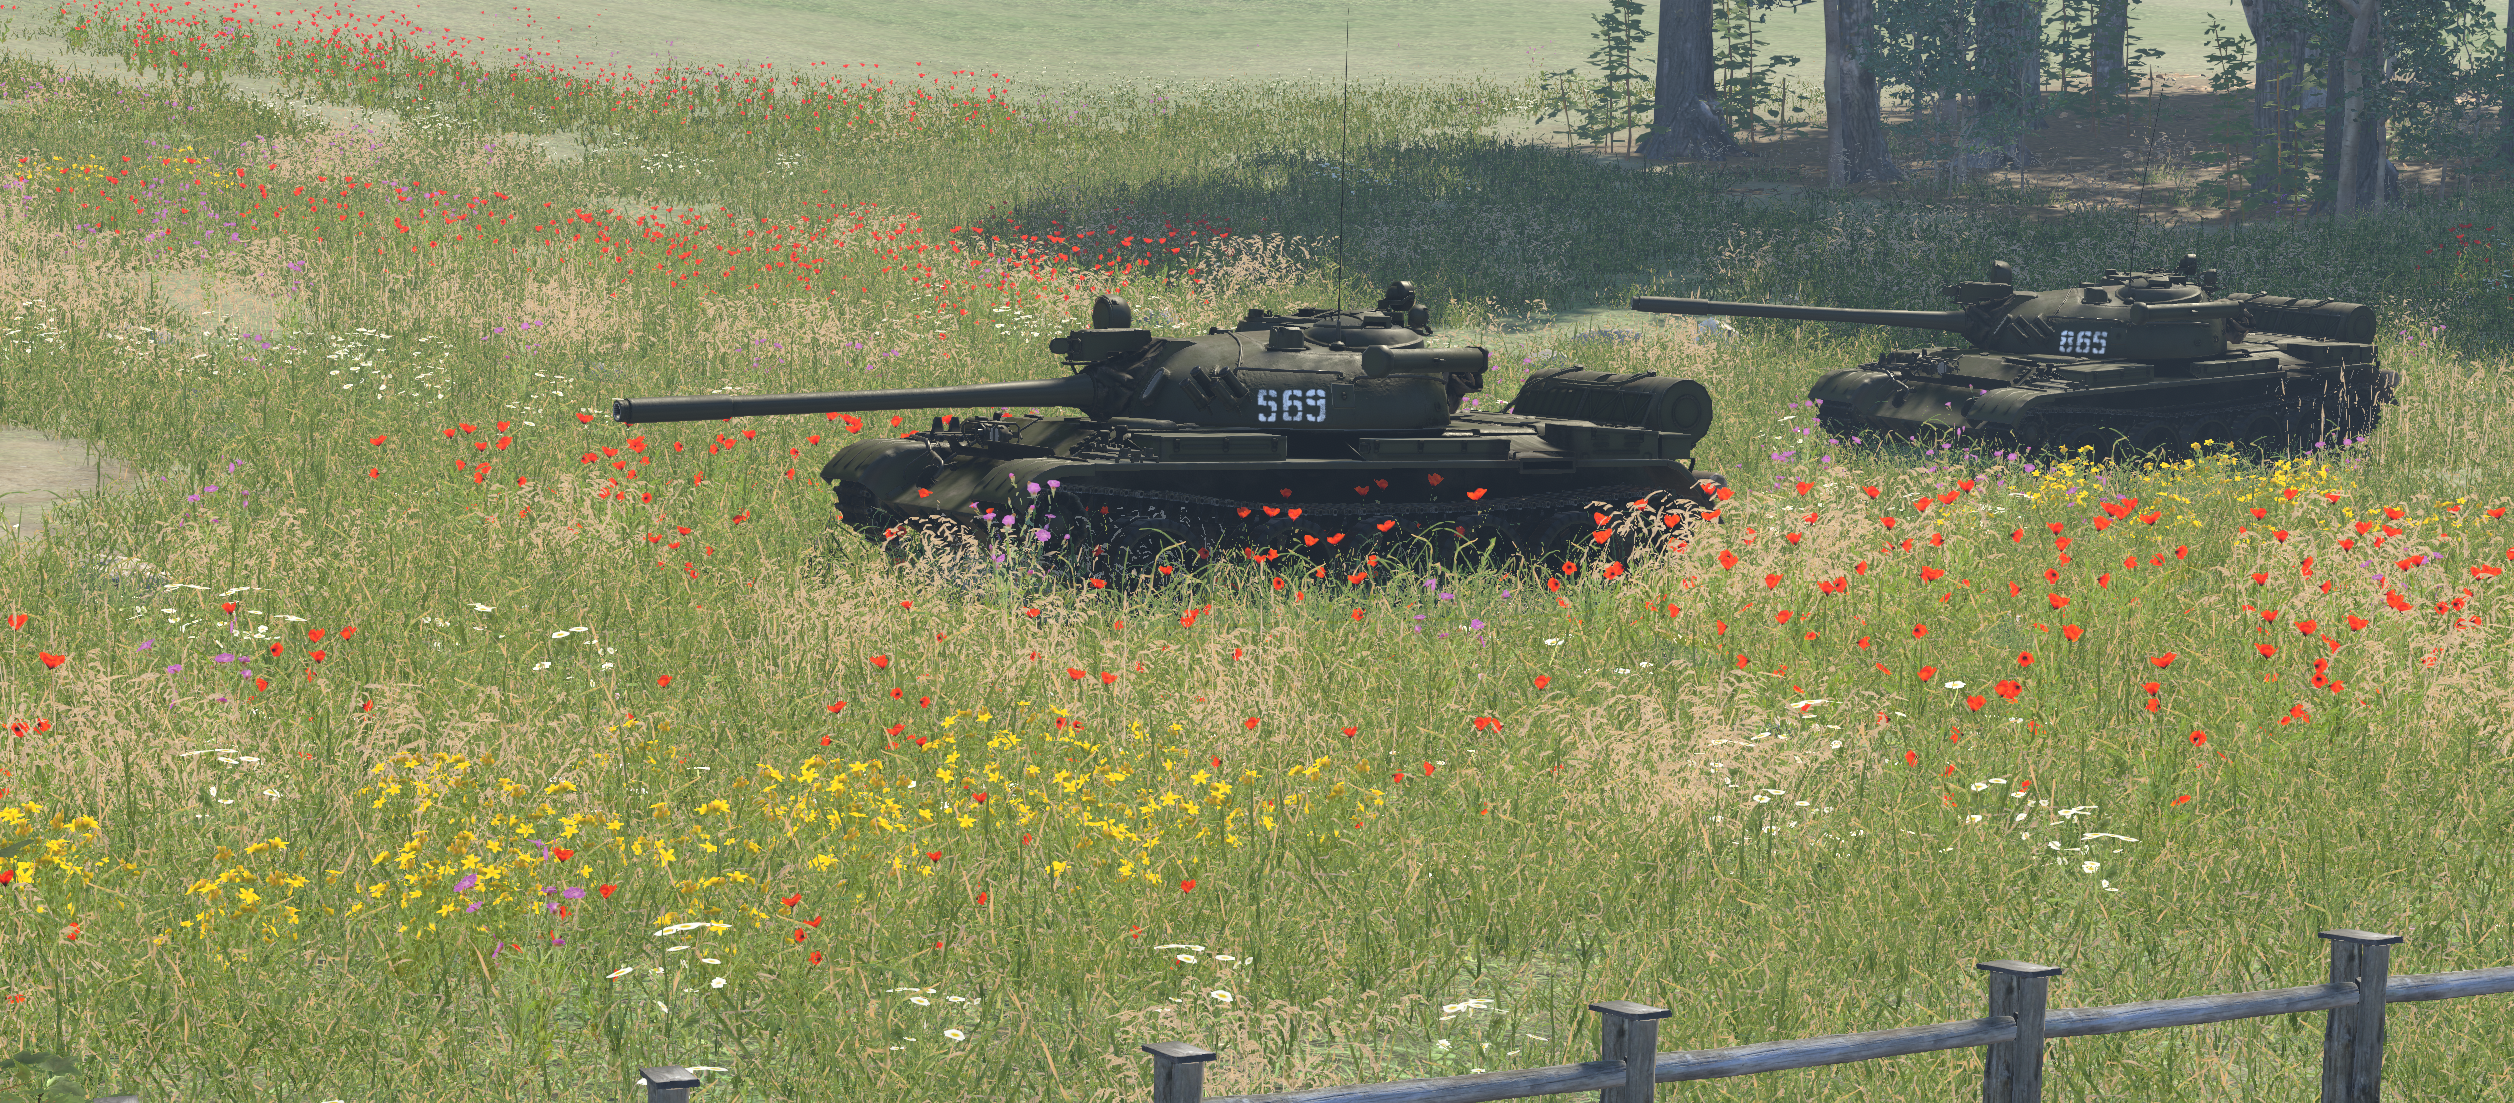 A pair of T-55As with unique tactical numbers